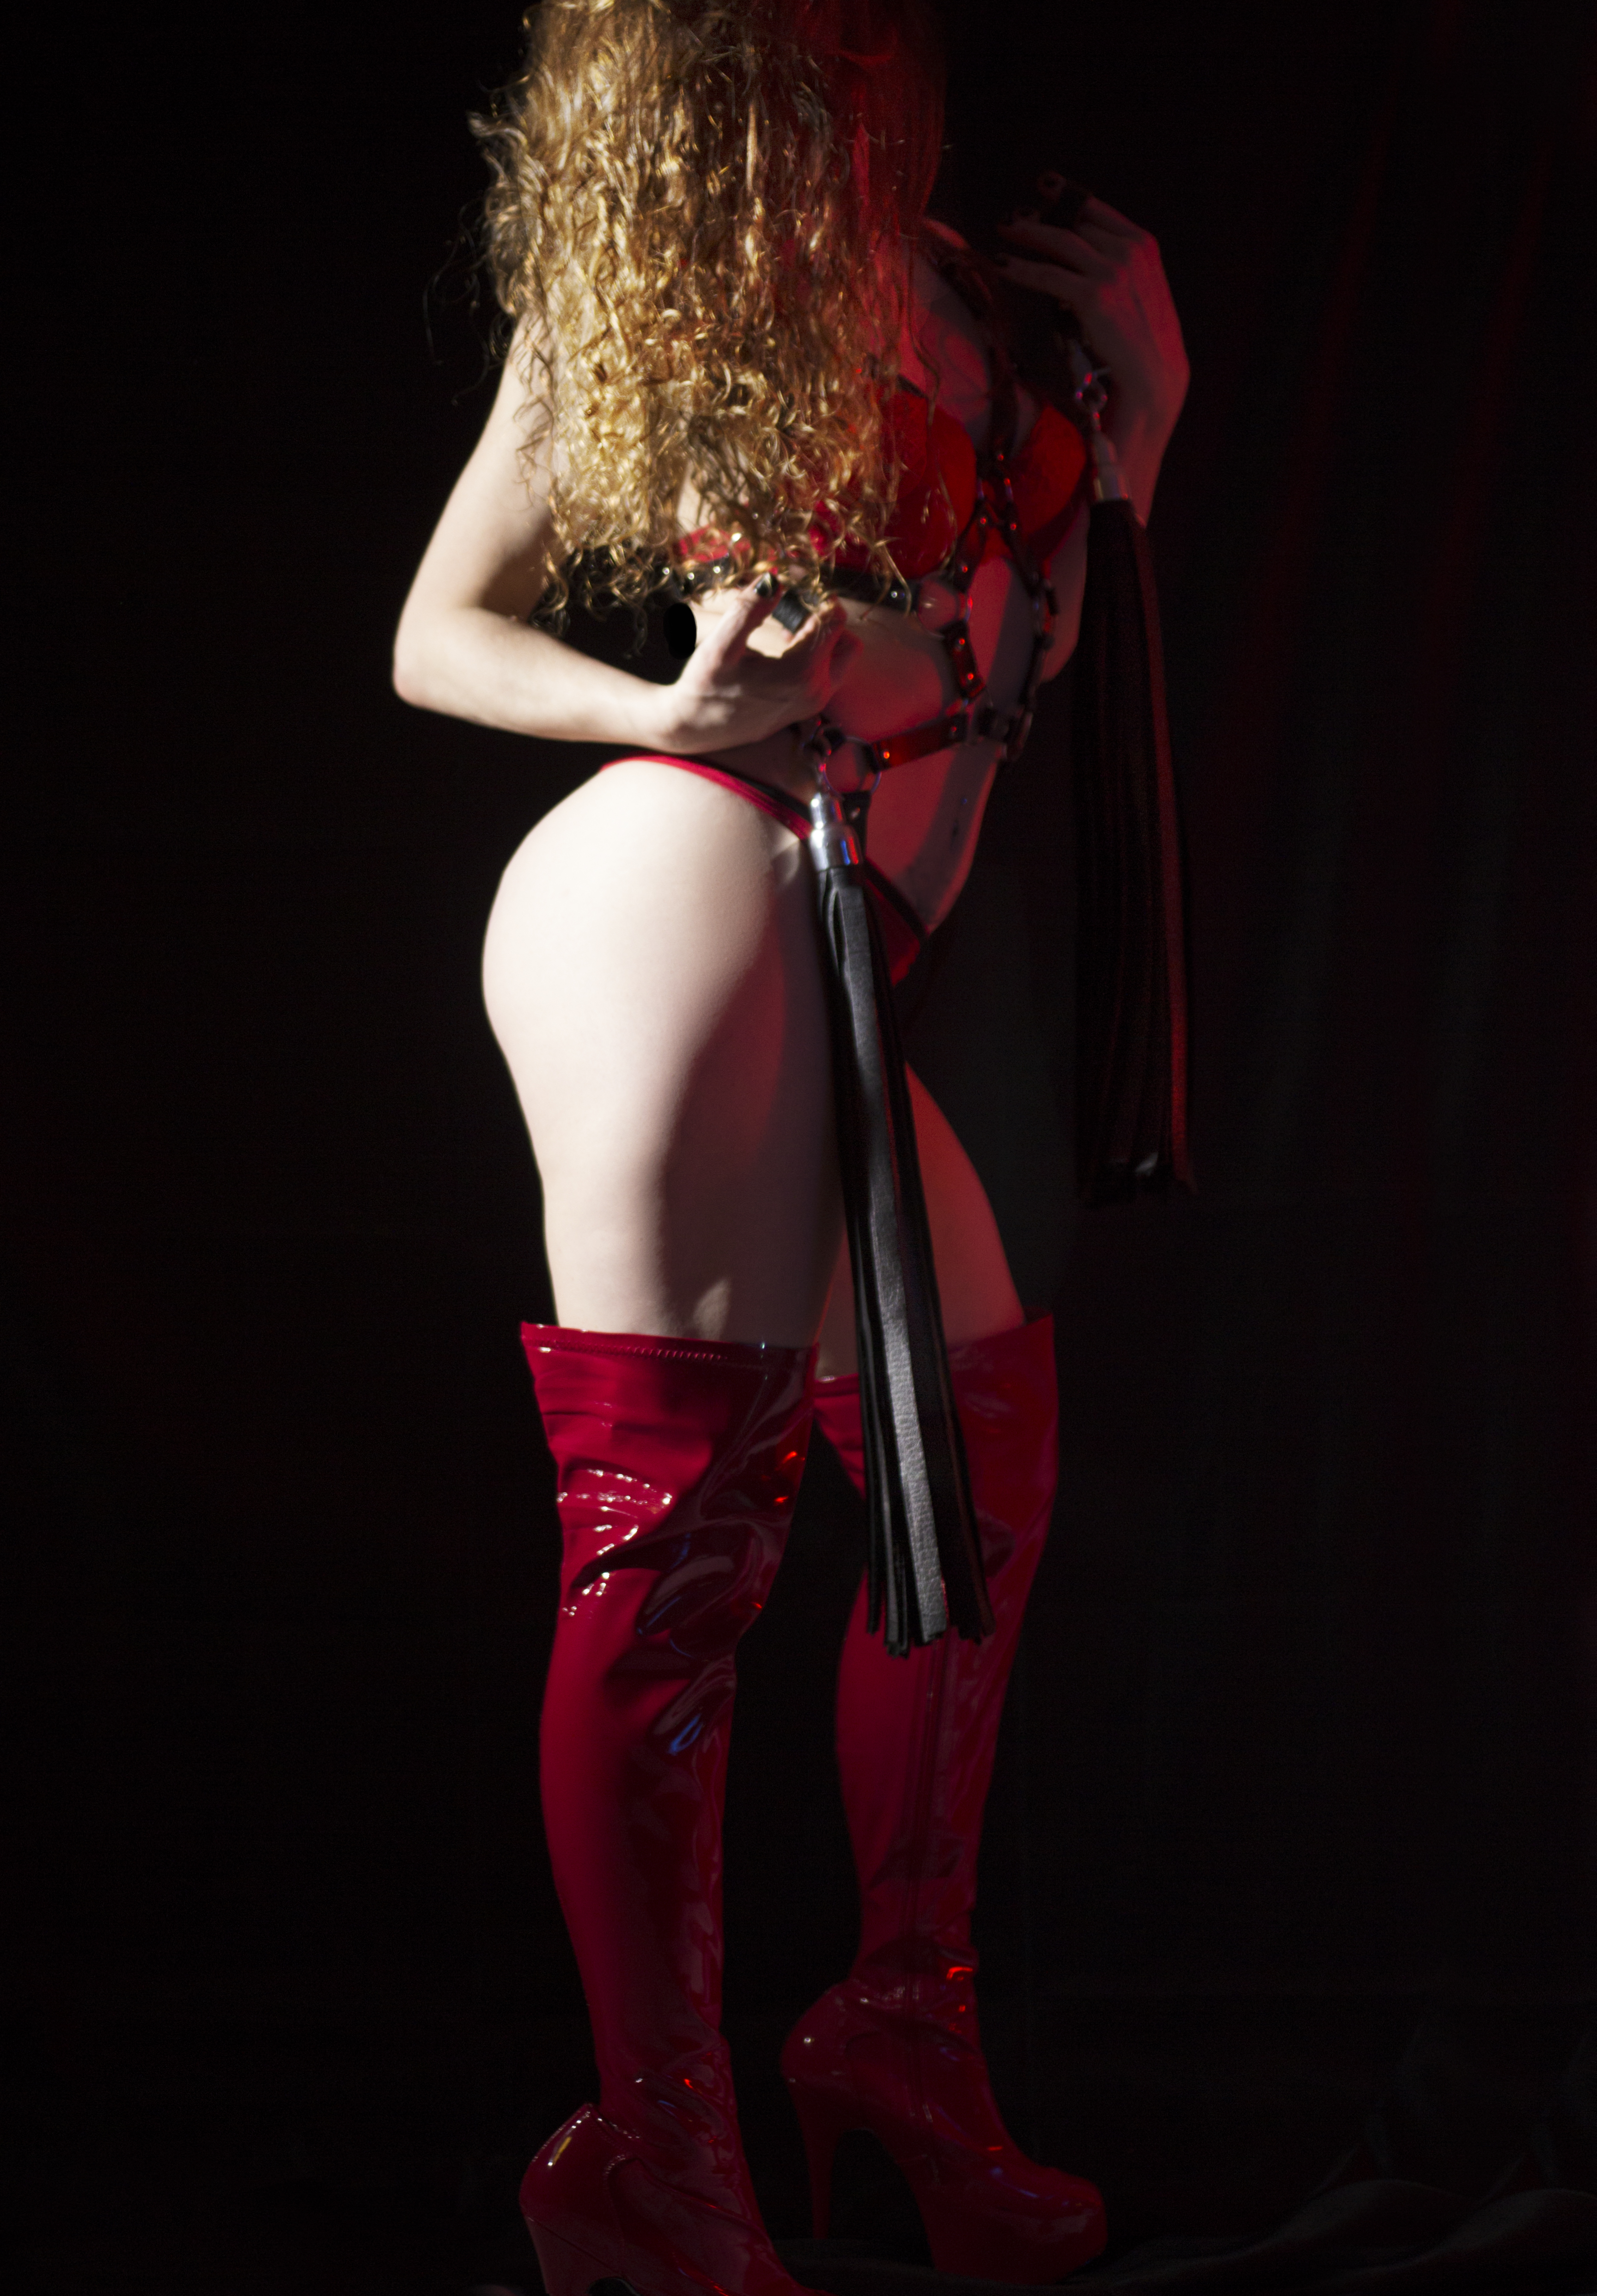 chicago dominatrix flogging floggers sensation play impact play high heel thigh high red pvc boots bottom worship smothering breath play leather flogger sensual tease and denial